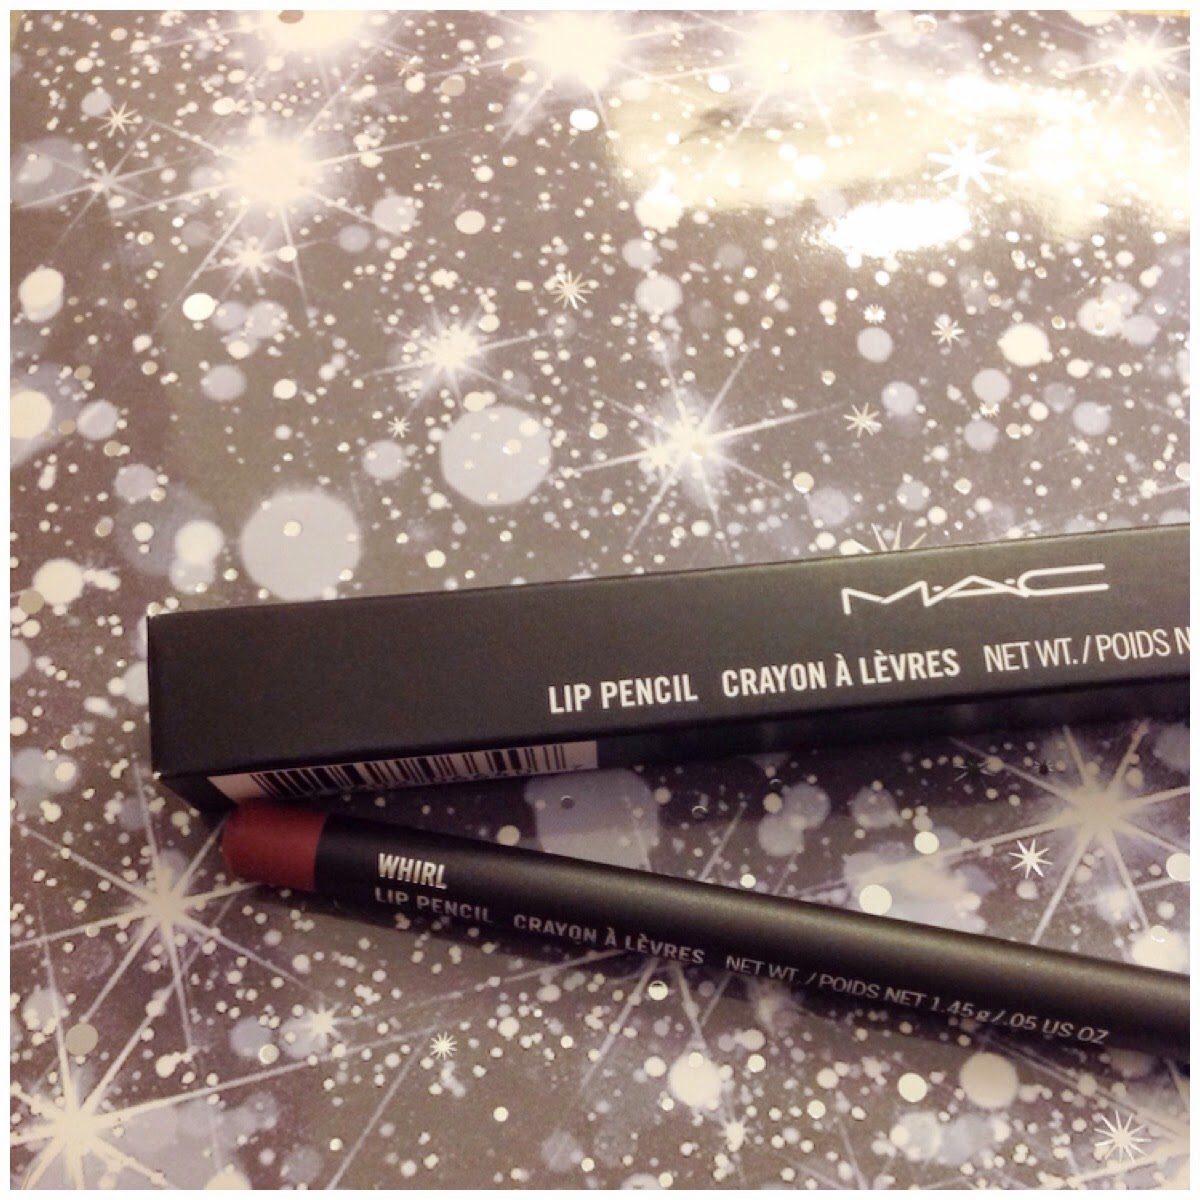 MAC Whirl Lip Pencil